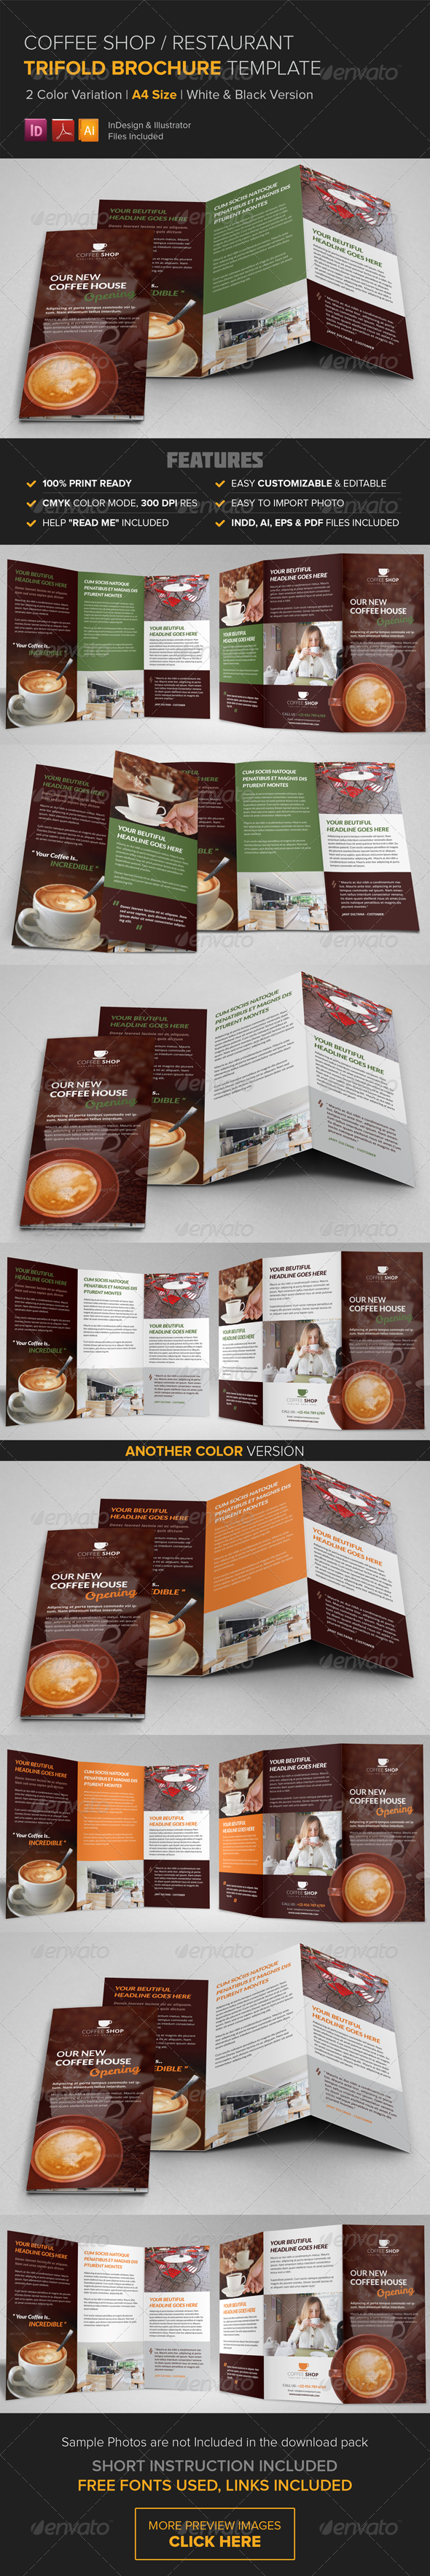 GraphicRiver Coffee Shop Restaurant Trifold Brochure Template 8597321